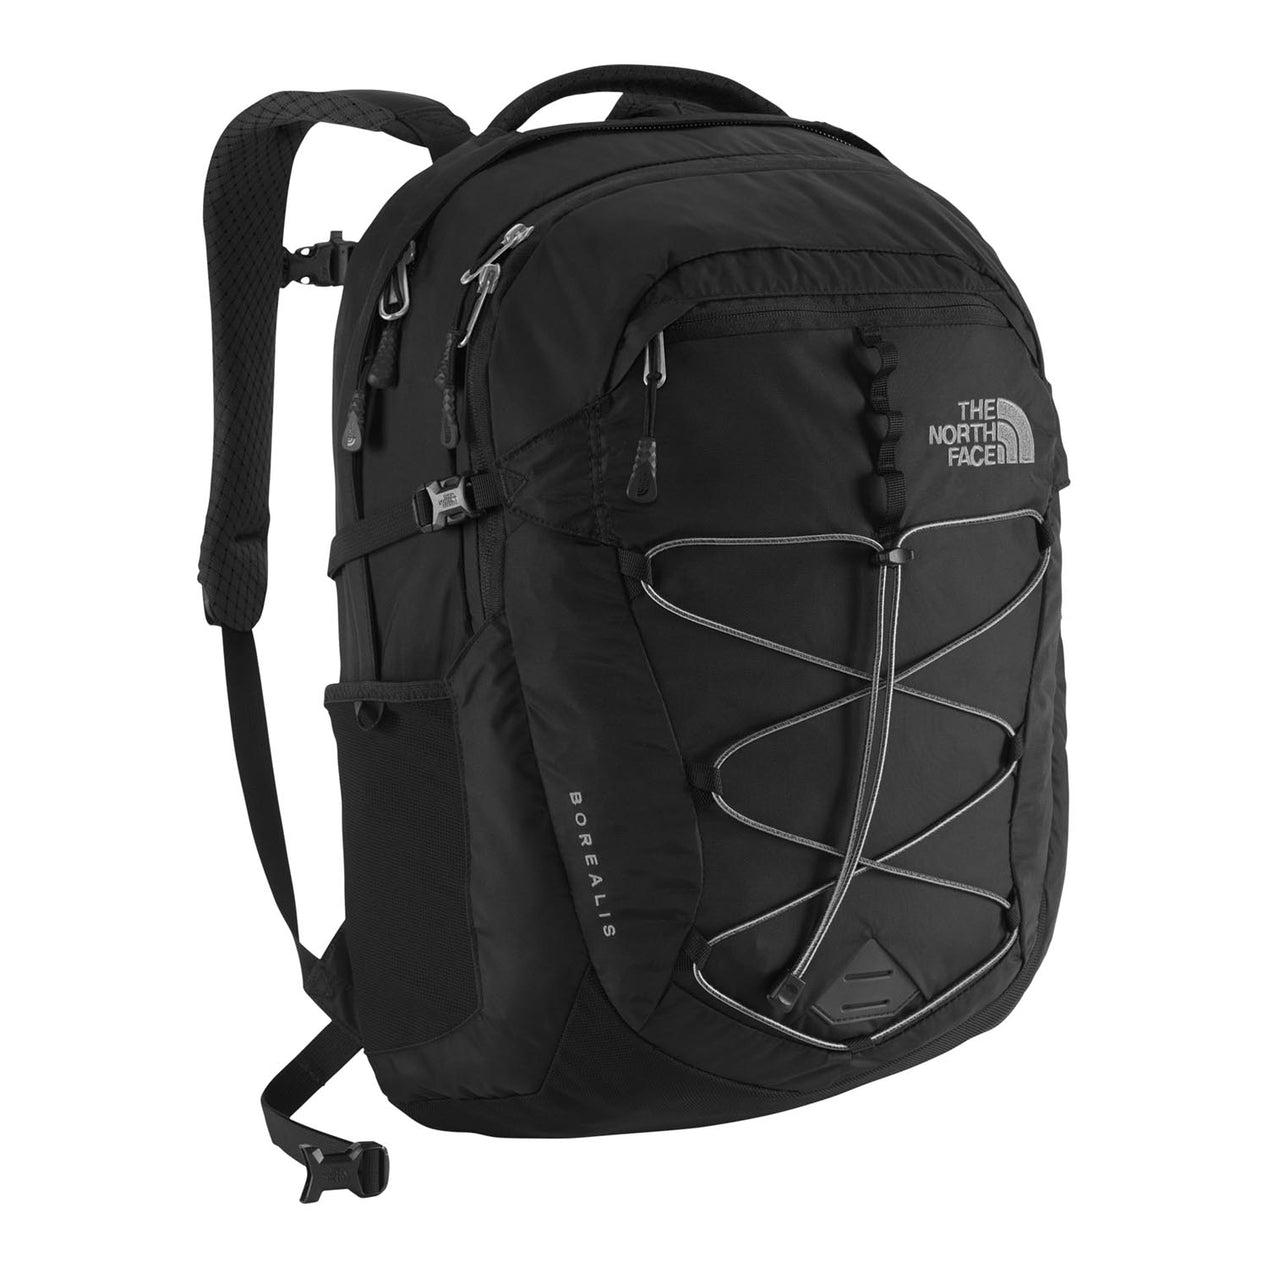 51b65bd00 The North Face Women's Borealis 25 L Backpack Past Season